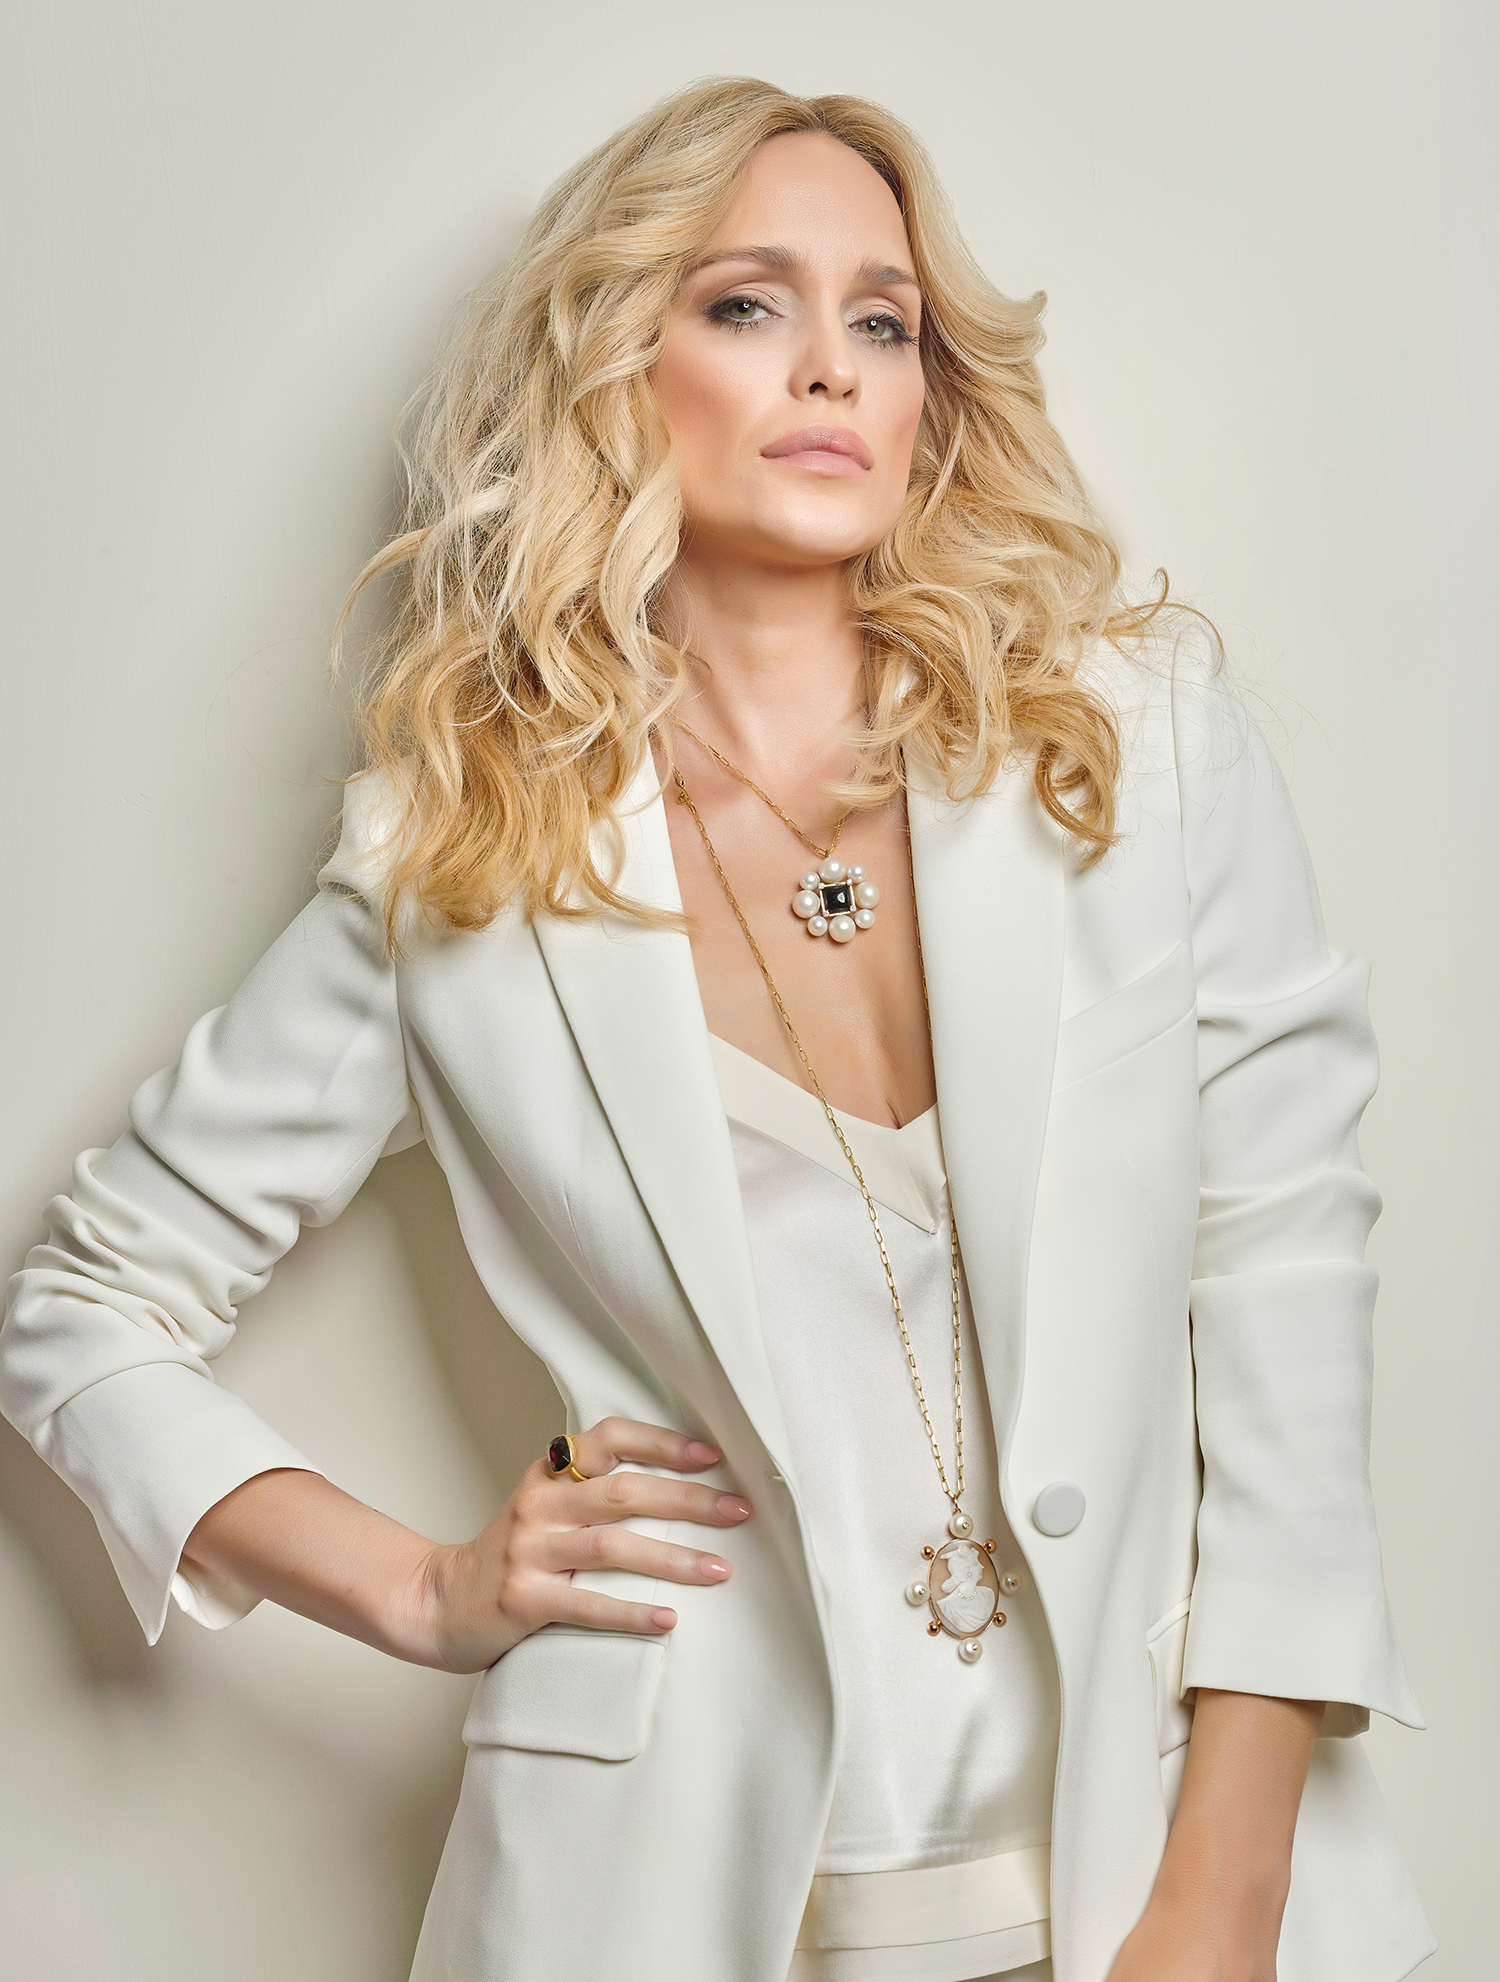 Jewellery on blond hair model hand on hip with large gold ring on finger, model looking at camera with large statement pendant around neck